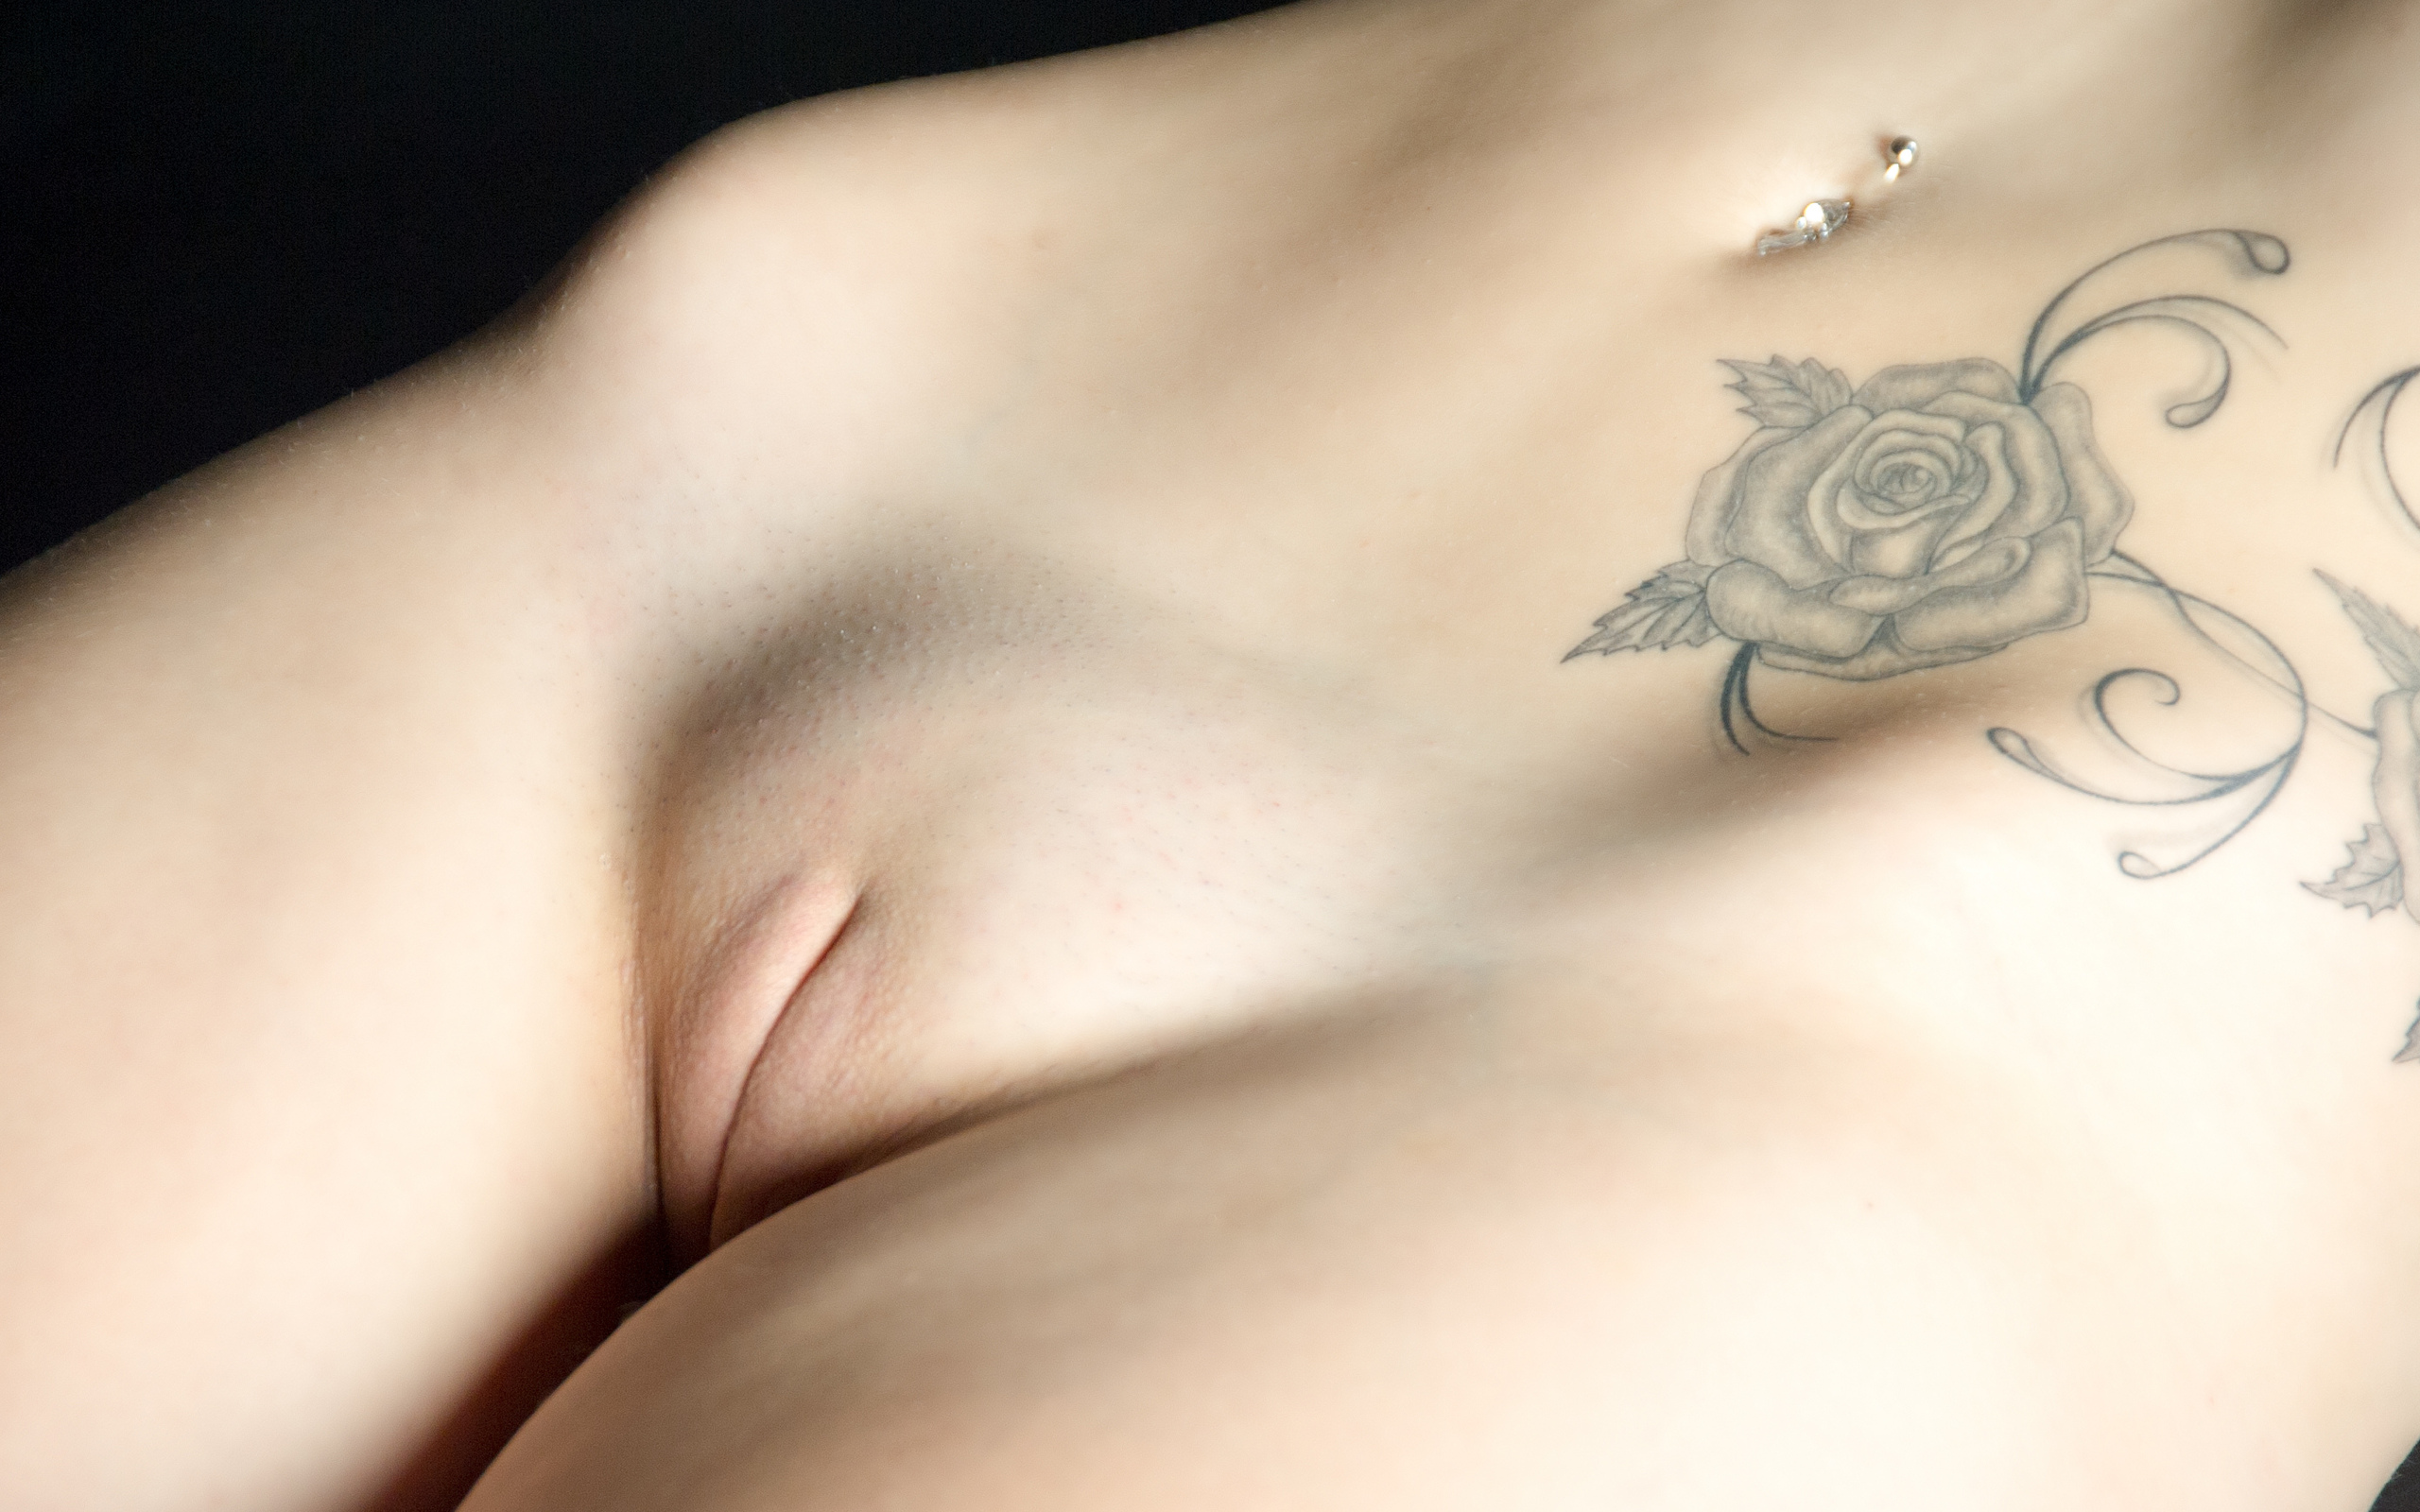 Sexy naked vagina tattoos, pokemon black and white ivy naked